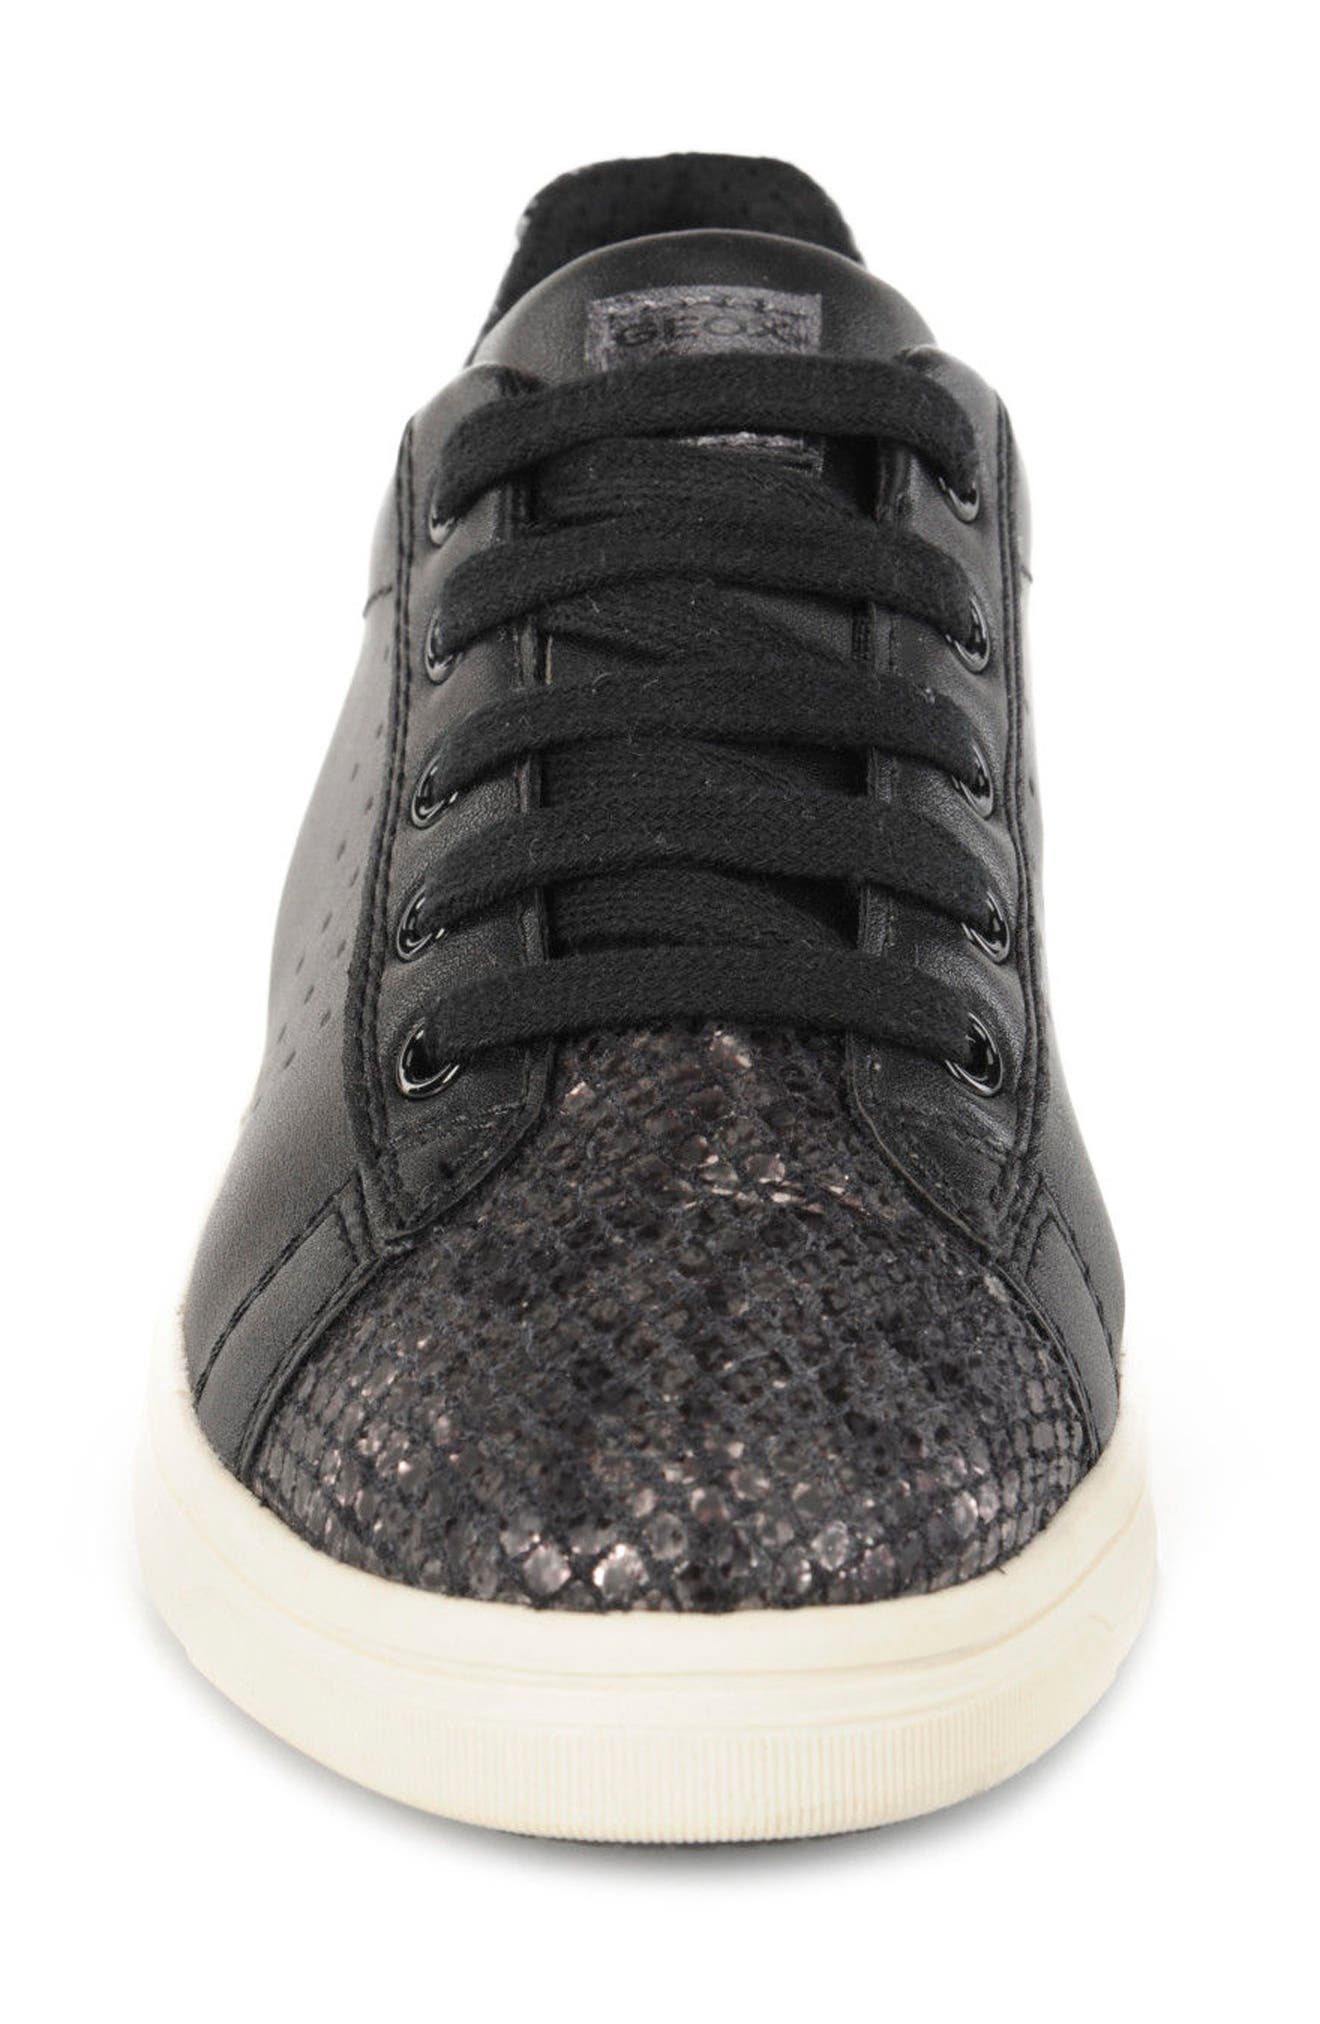 Cave Up Girl Low Top Sneaker,                             Alternate thumbnail 4, color,                             001